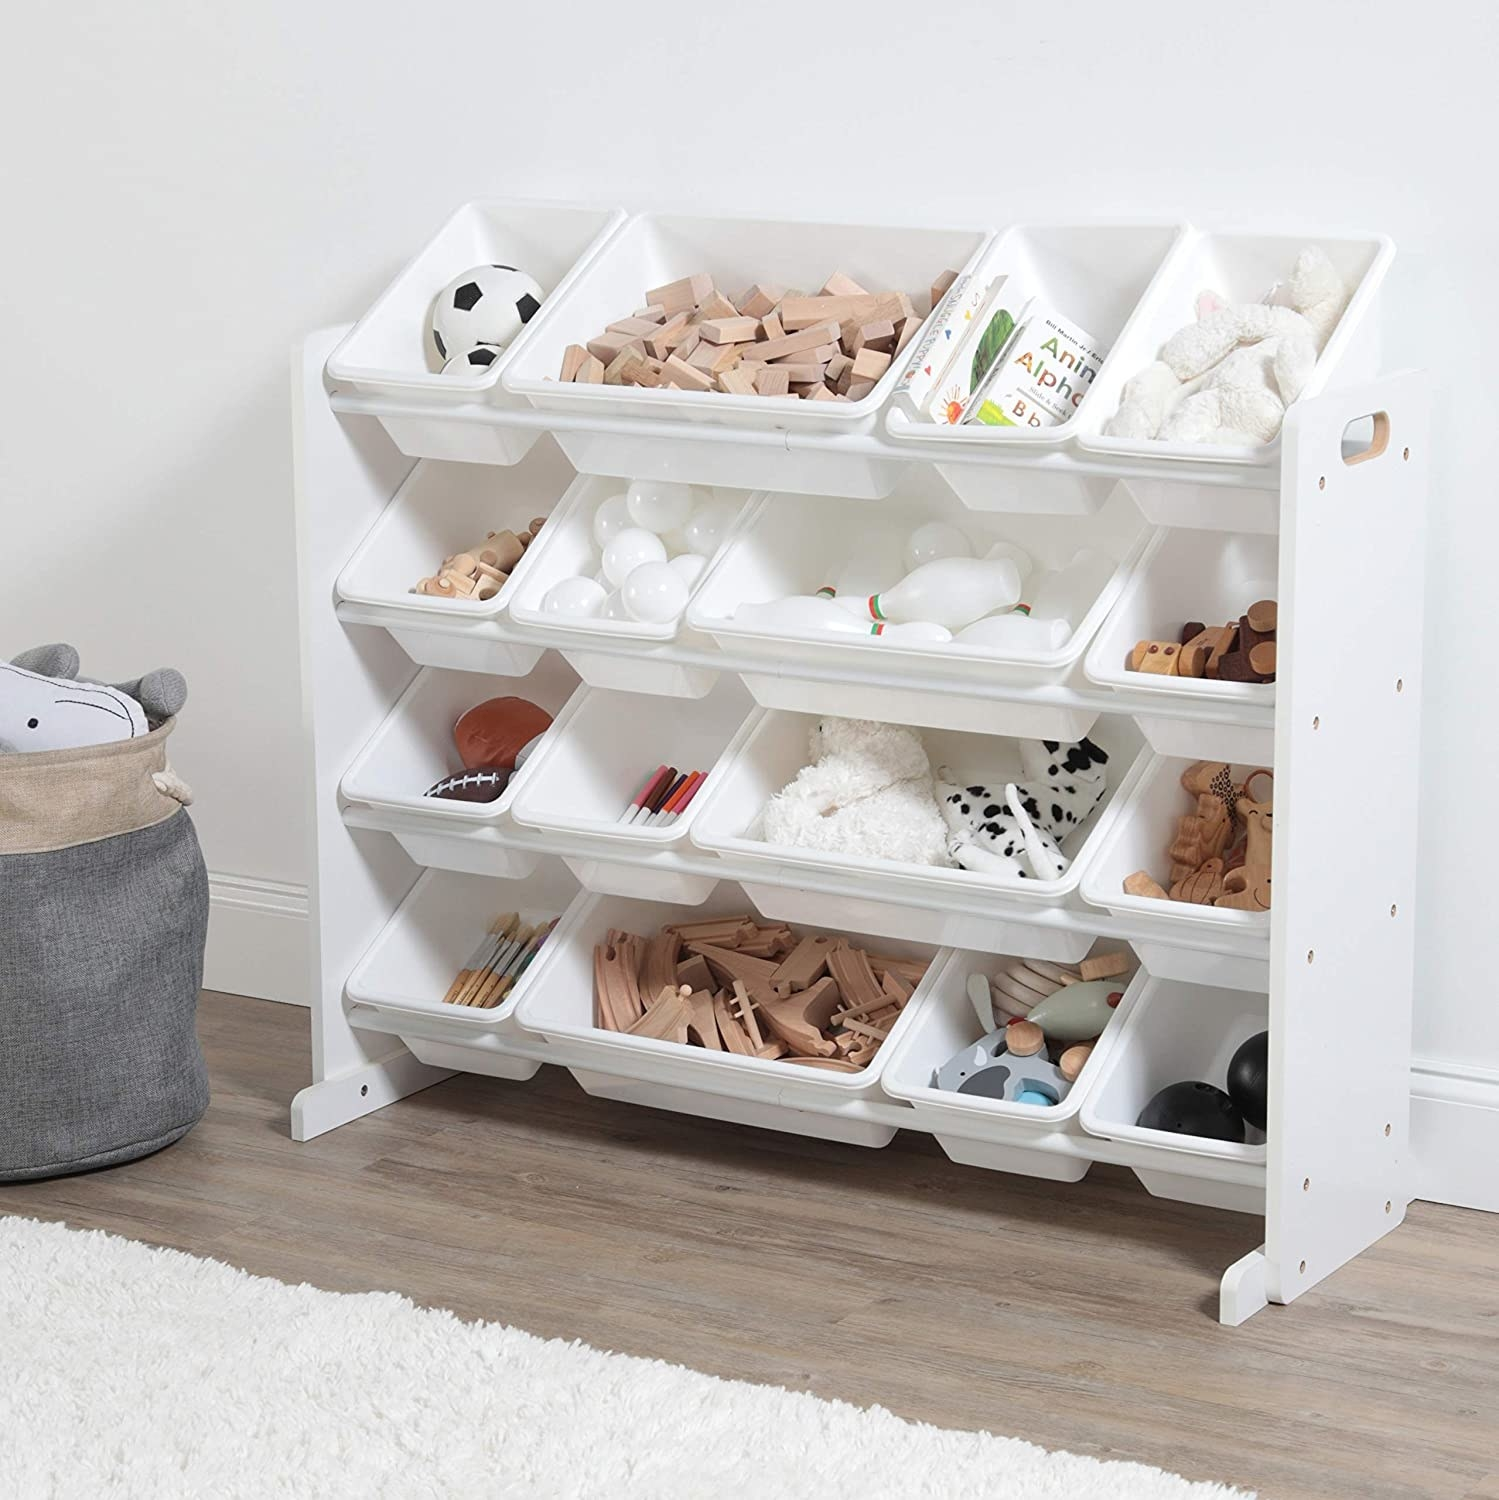 Minimalist white shelving with matching removable containers in varying sizes. It has four shelves.